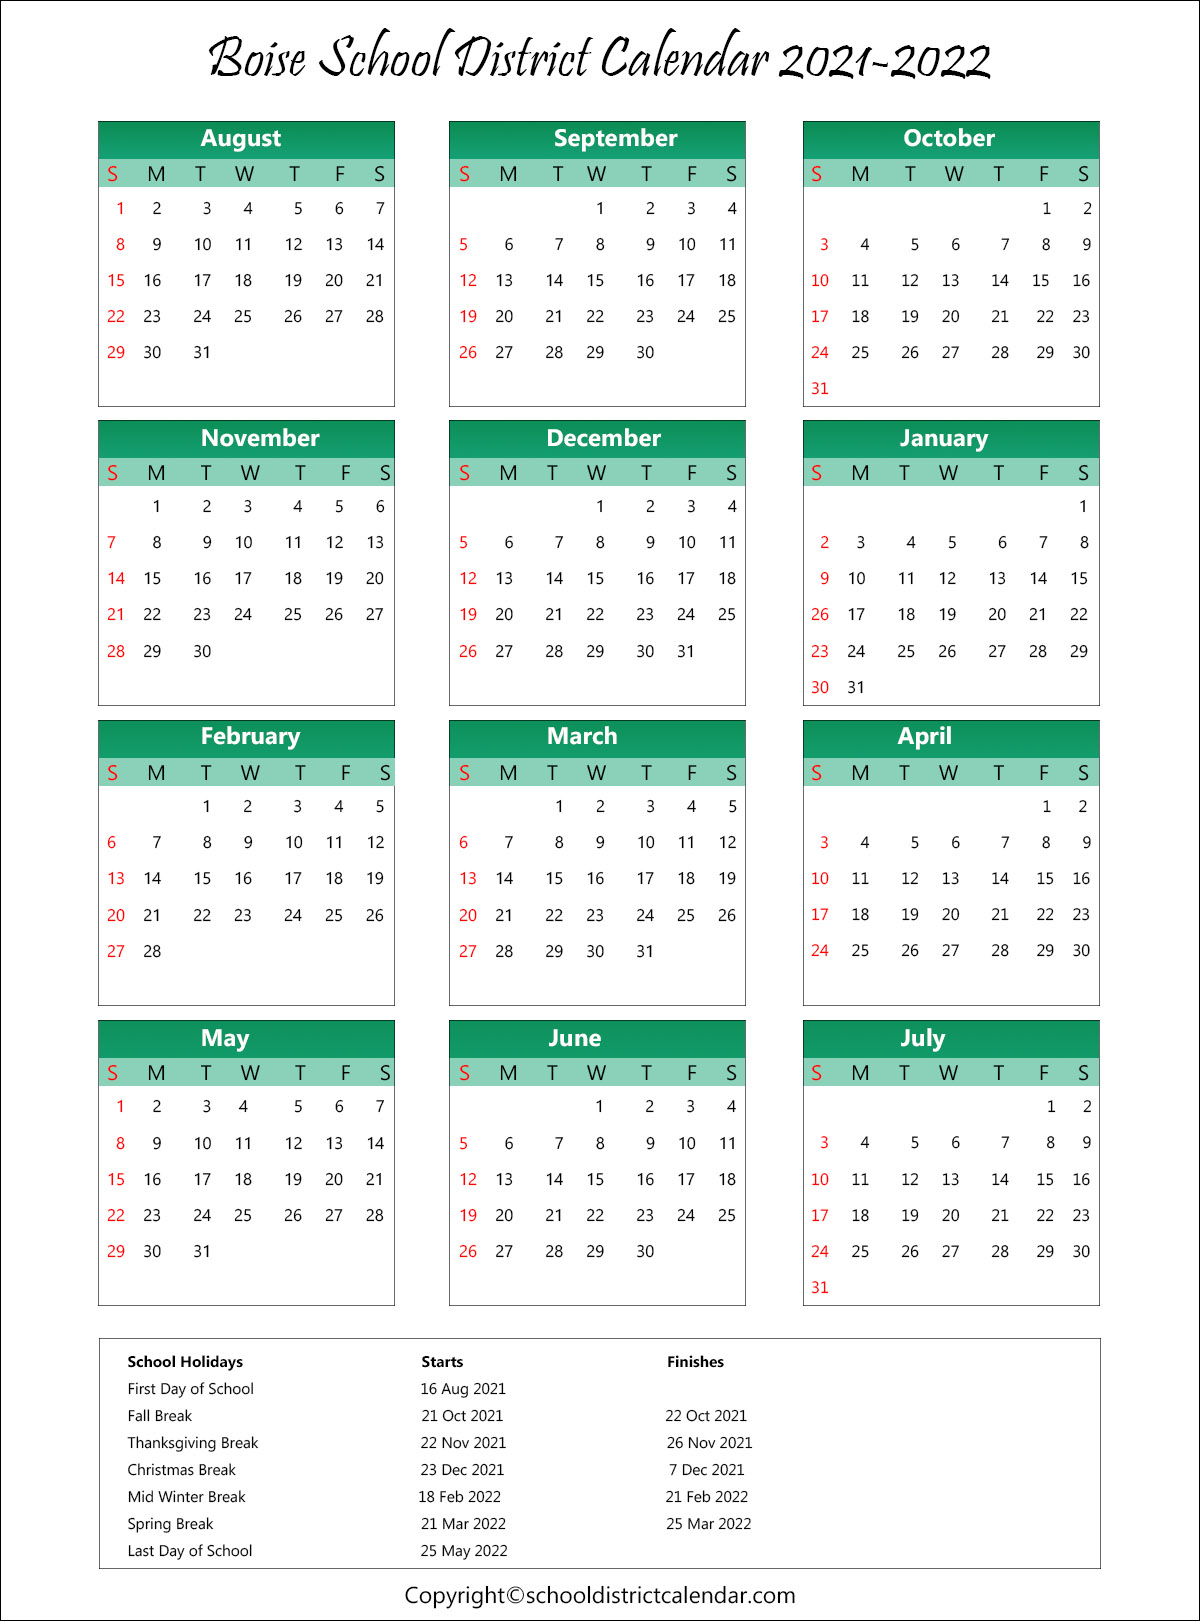 Boise School District, Idaho Calendar Holidays 2021